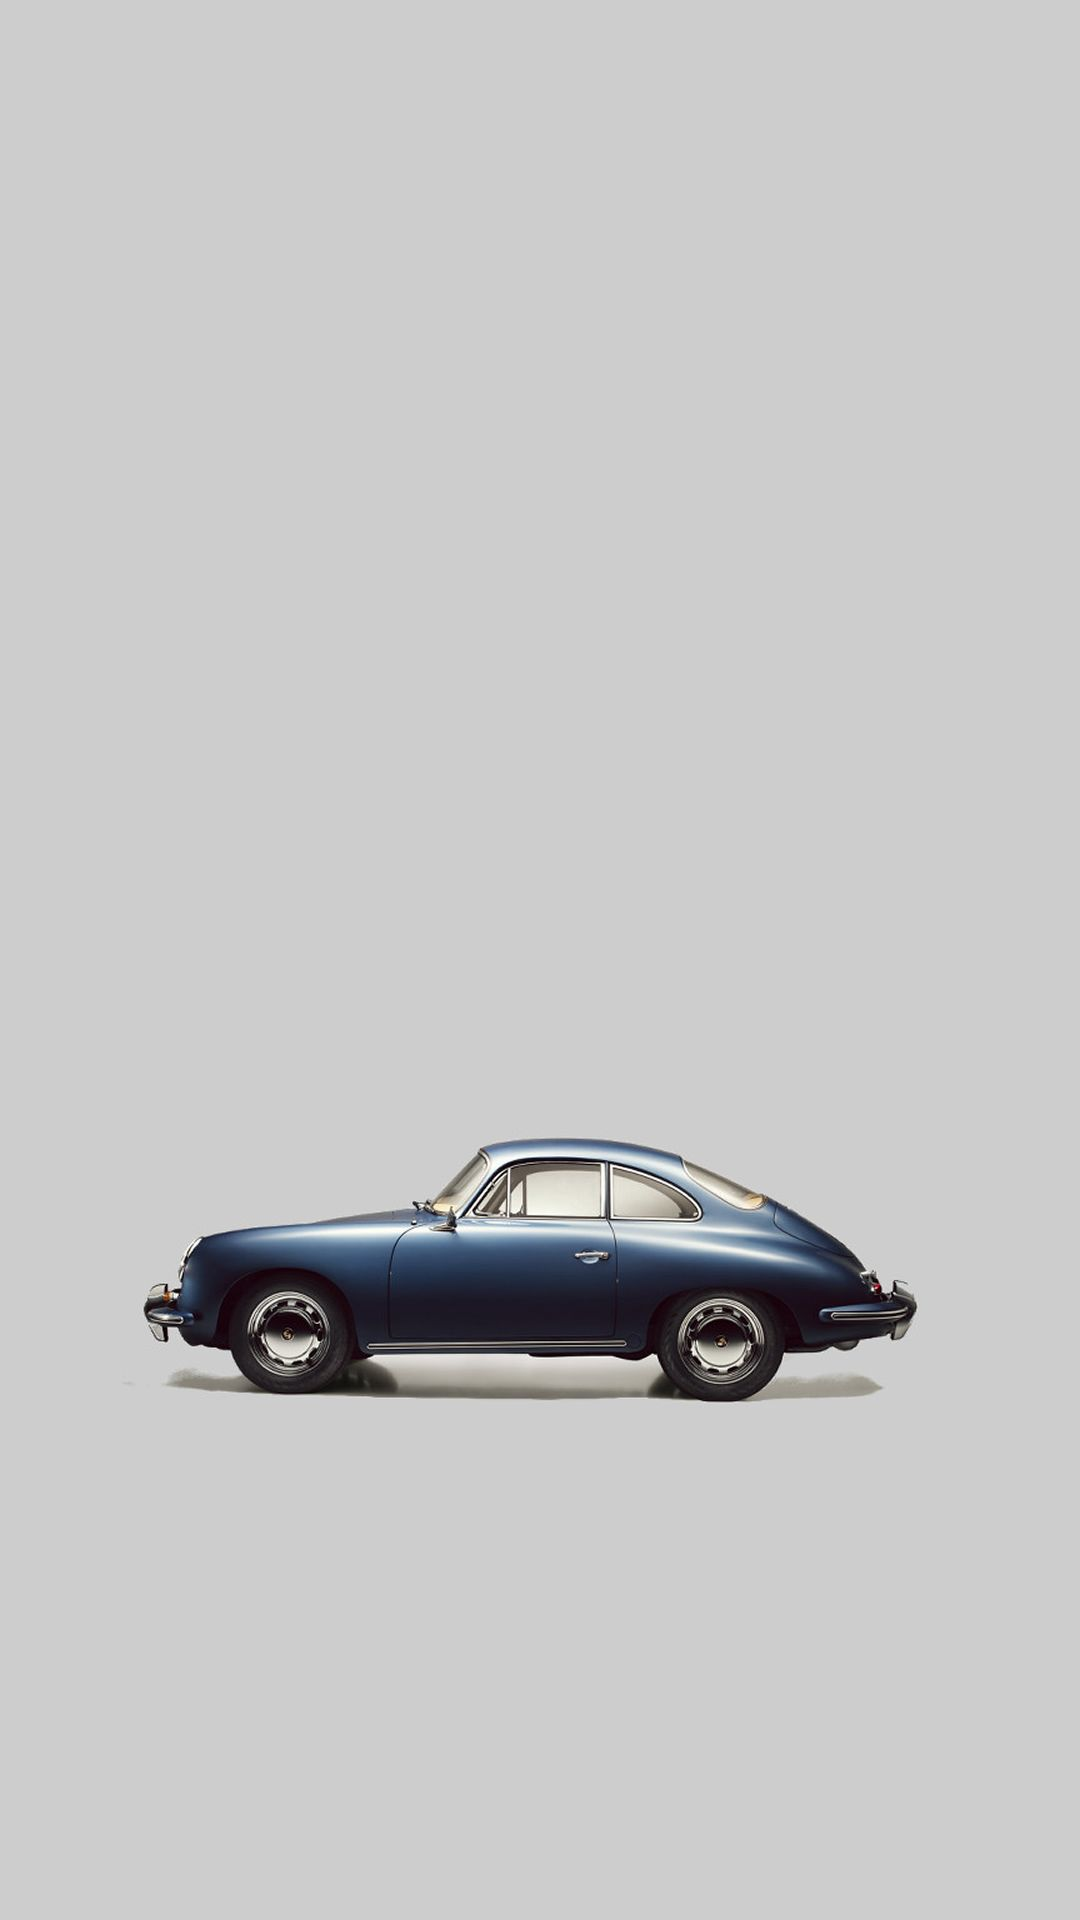 Porsche 356b Iphone 8 Wallpapers With Images Car Iphone